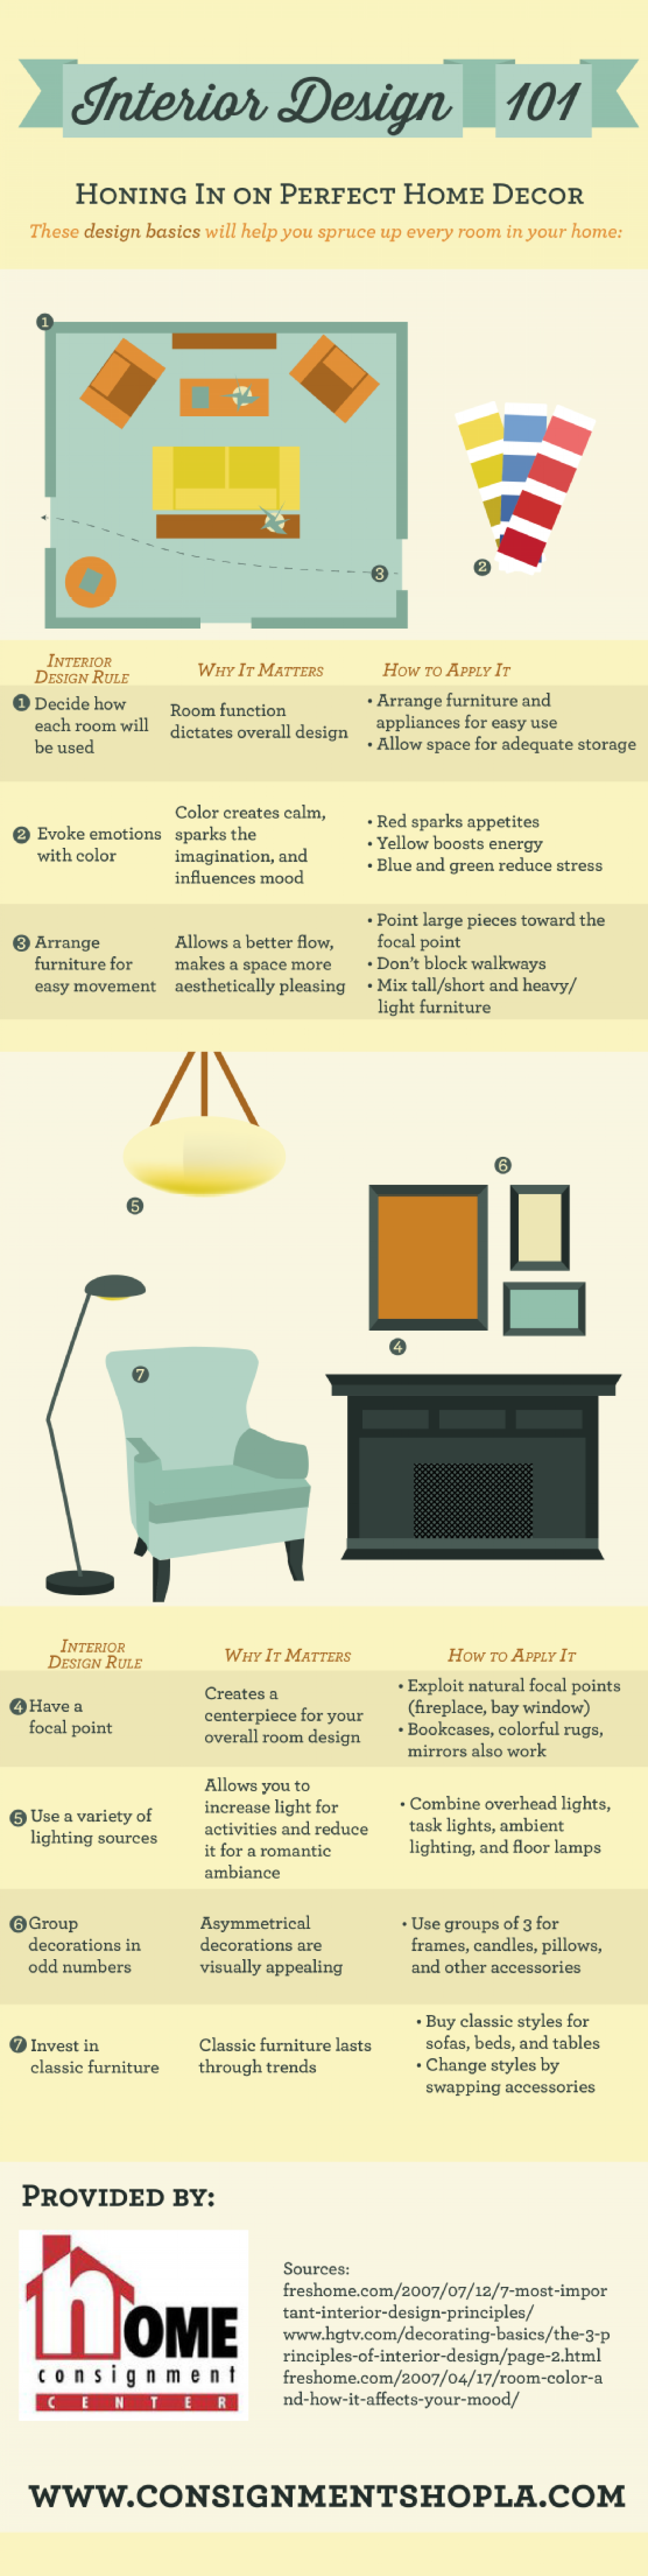 Interior Design 101: Honing In on the Perfect Home Decor Infographic